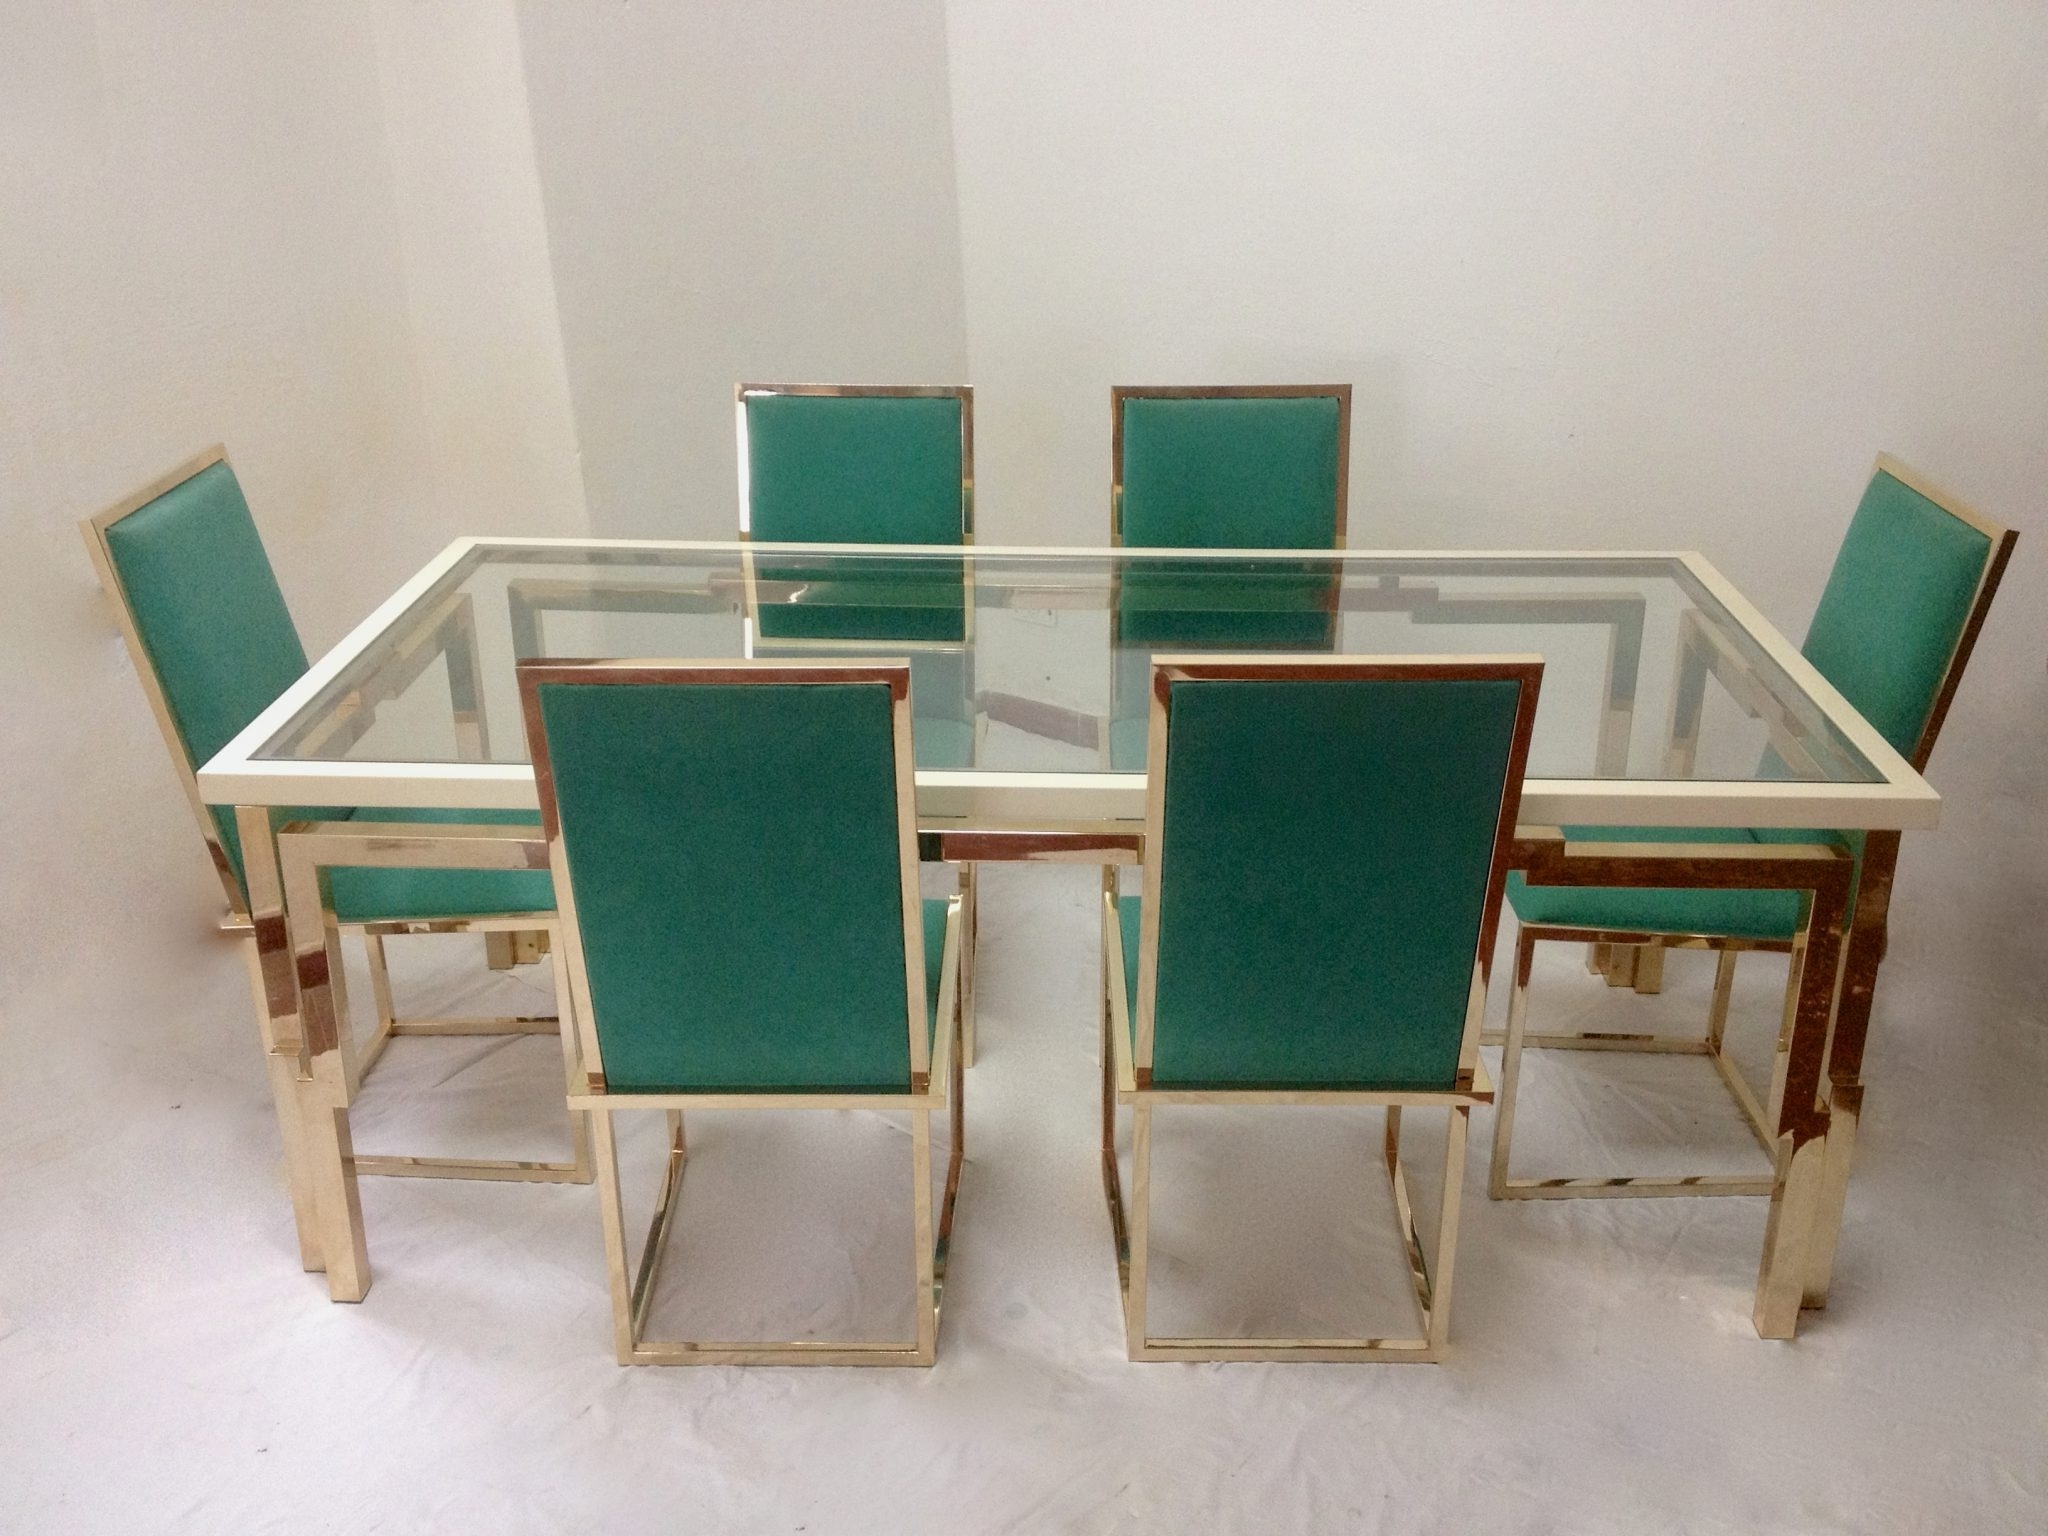 Dining Tables And Six Chairs throughout Most Current Romeo Rega (Att.) Double Frame Dining Table With Six Chairs